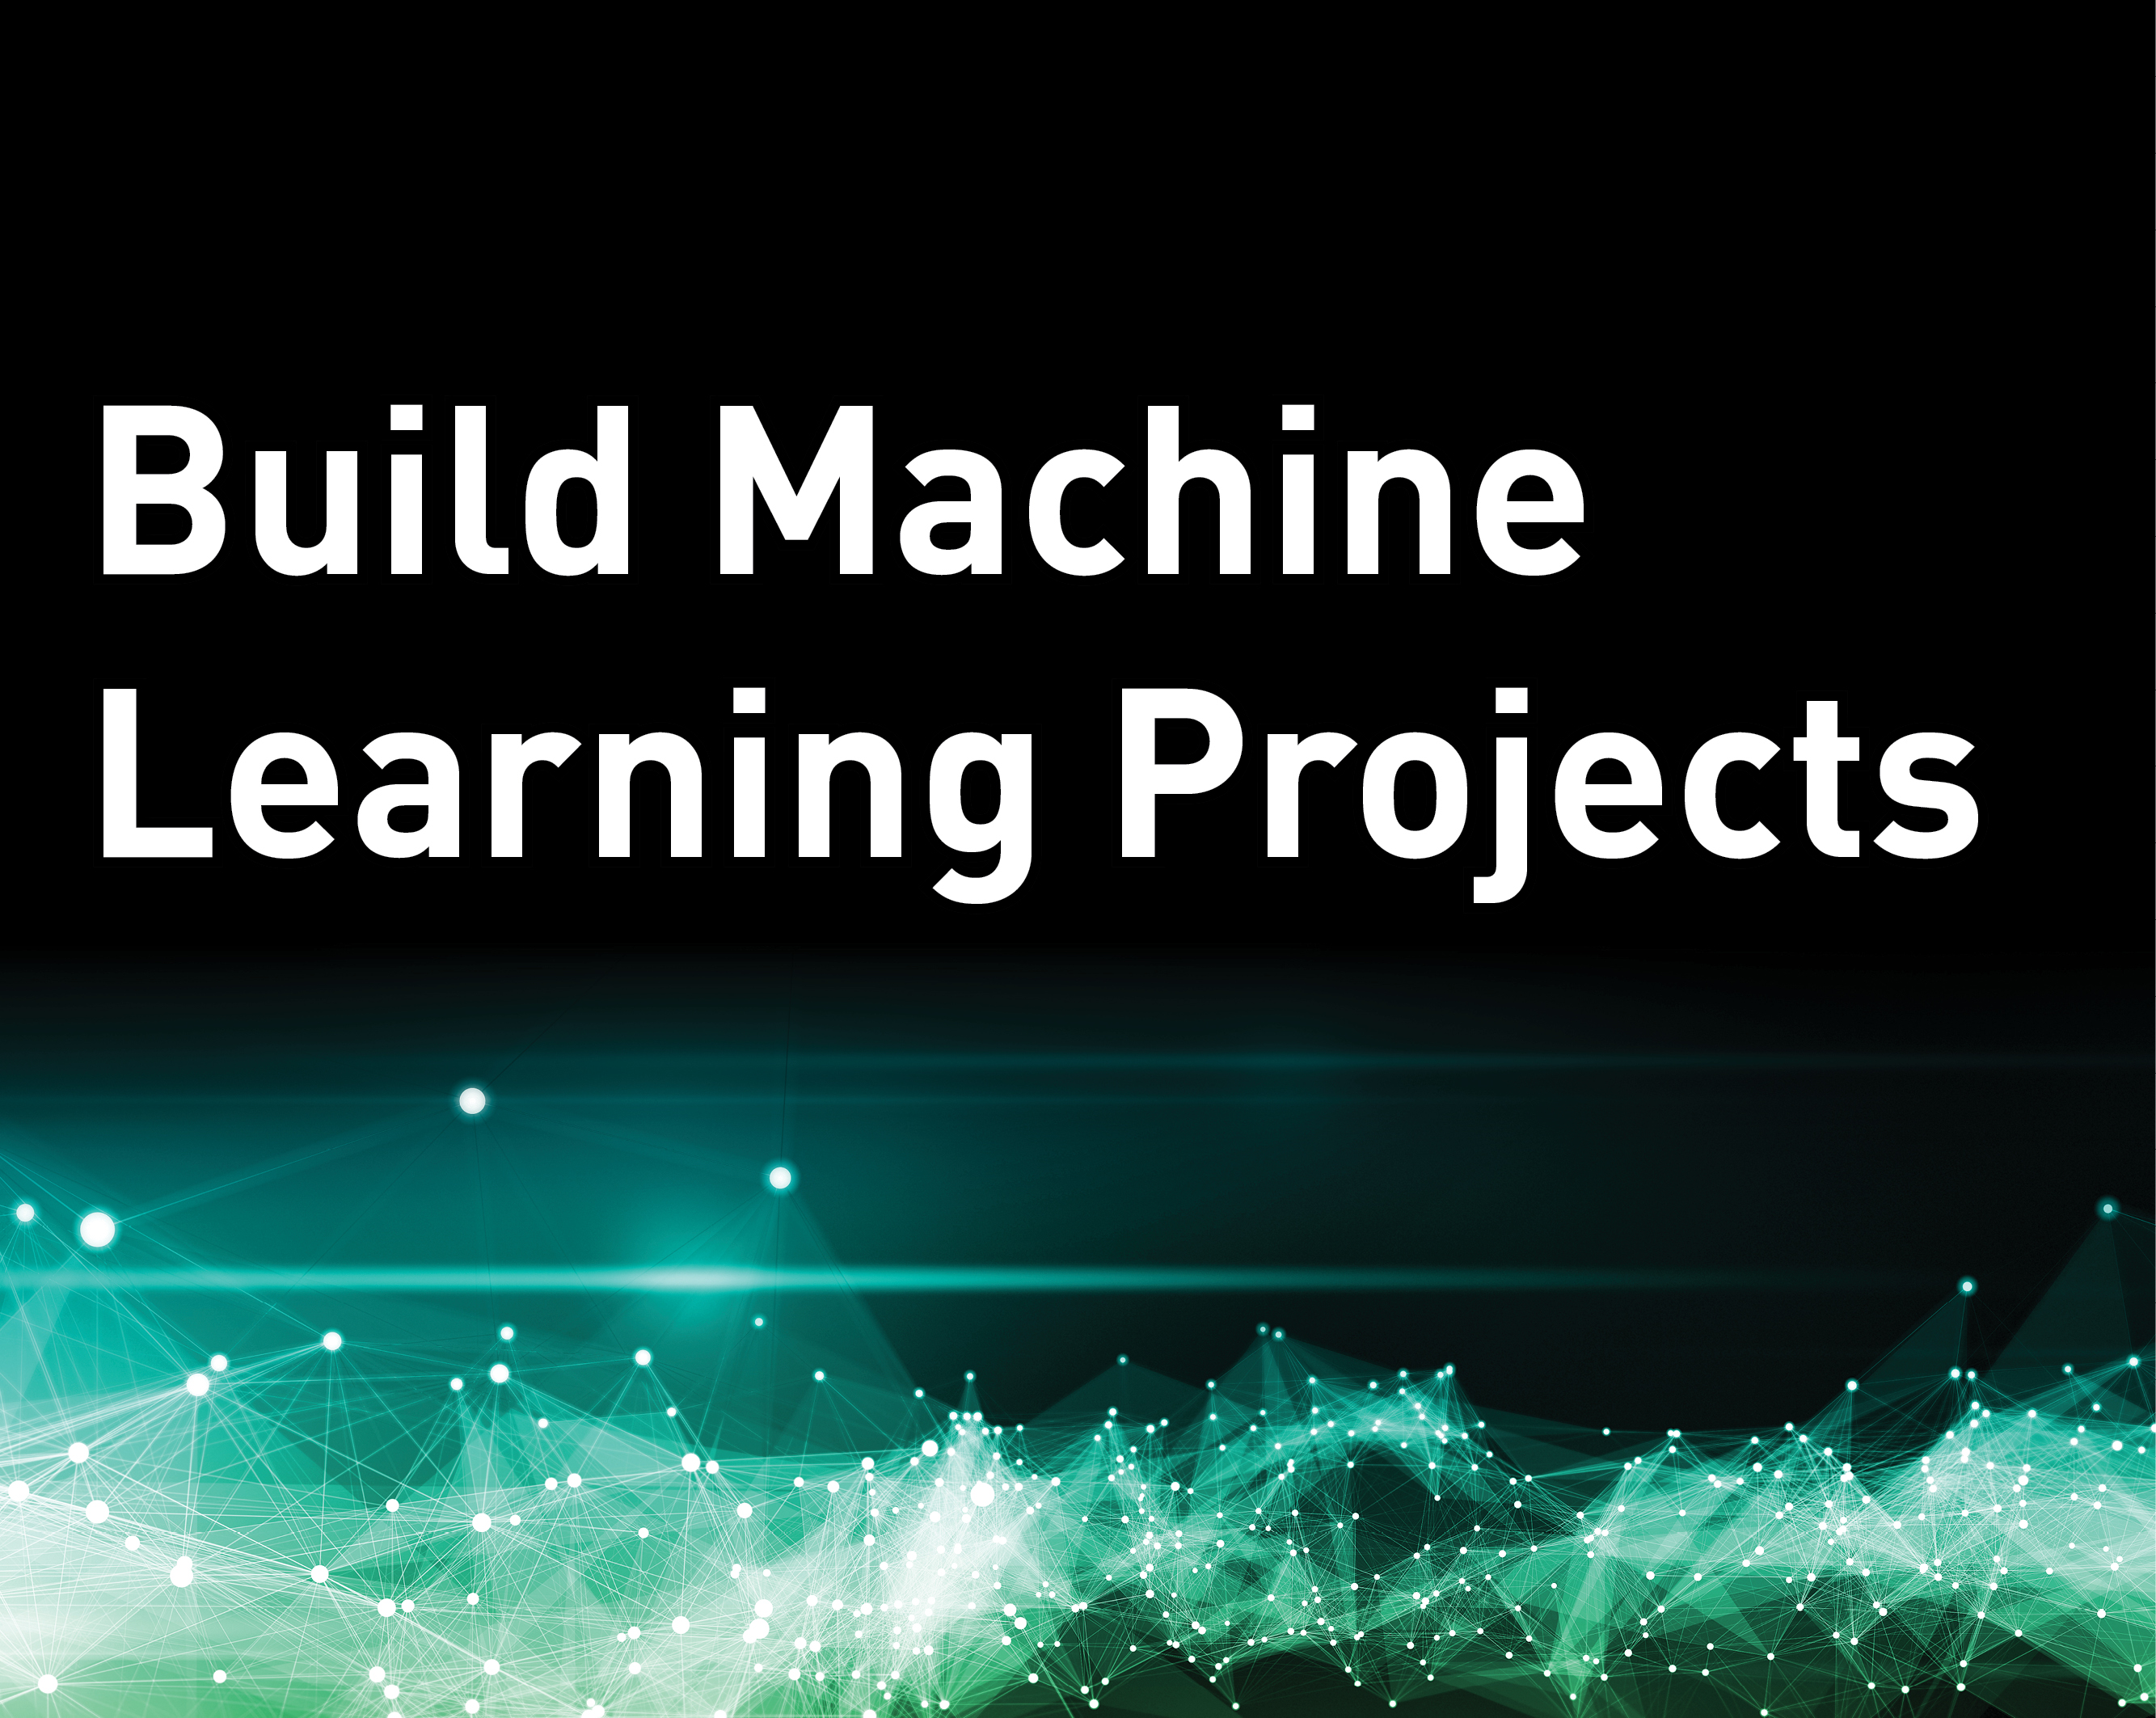 Build Machine Learning Projects